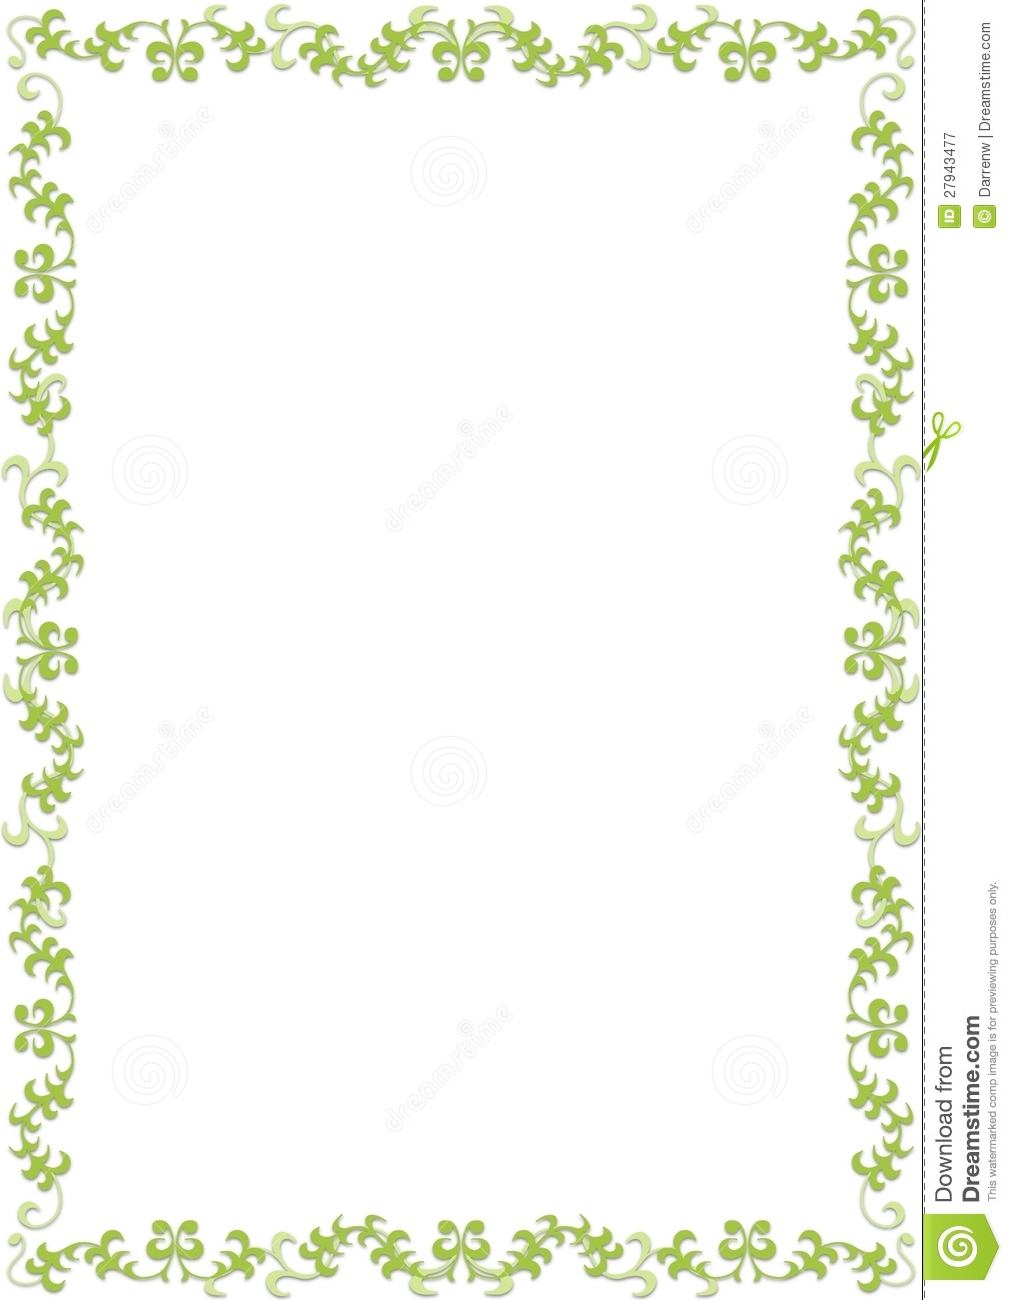 Cute Bordered Pastel Flower Wallpaper Green Floral Border Royalty Free Stock Photography Image